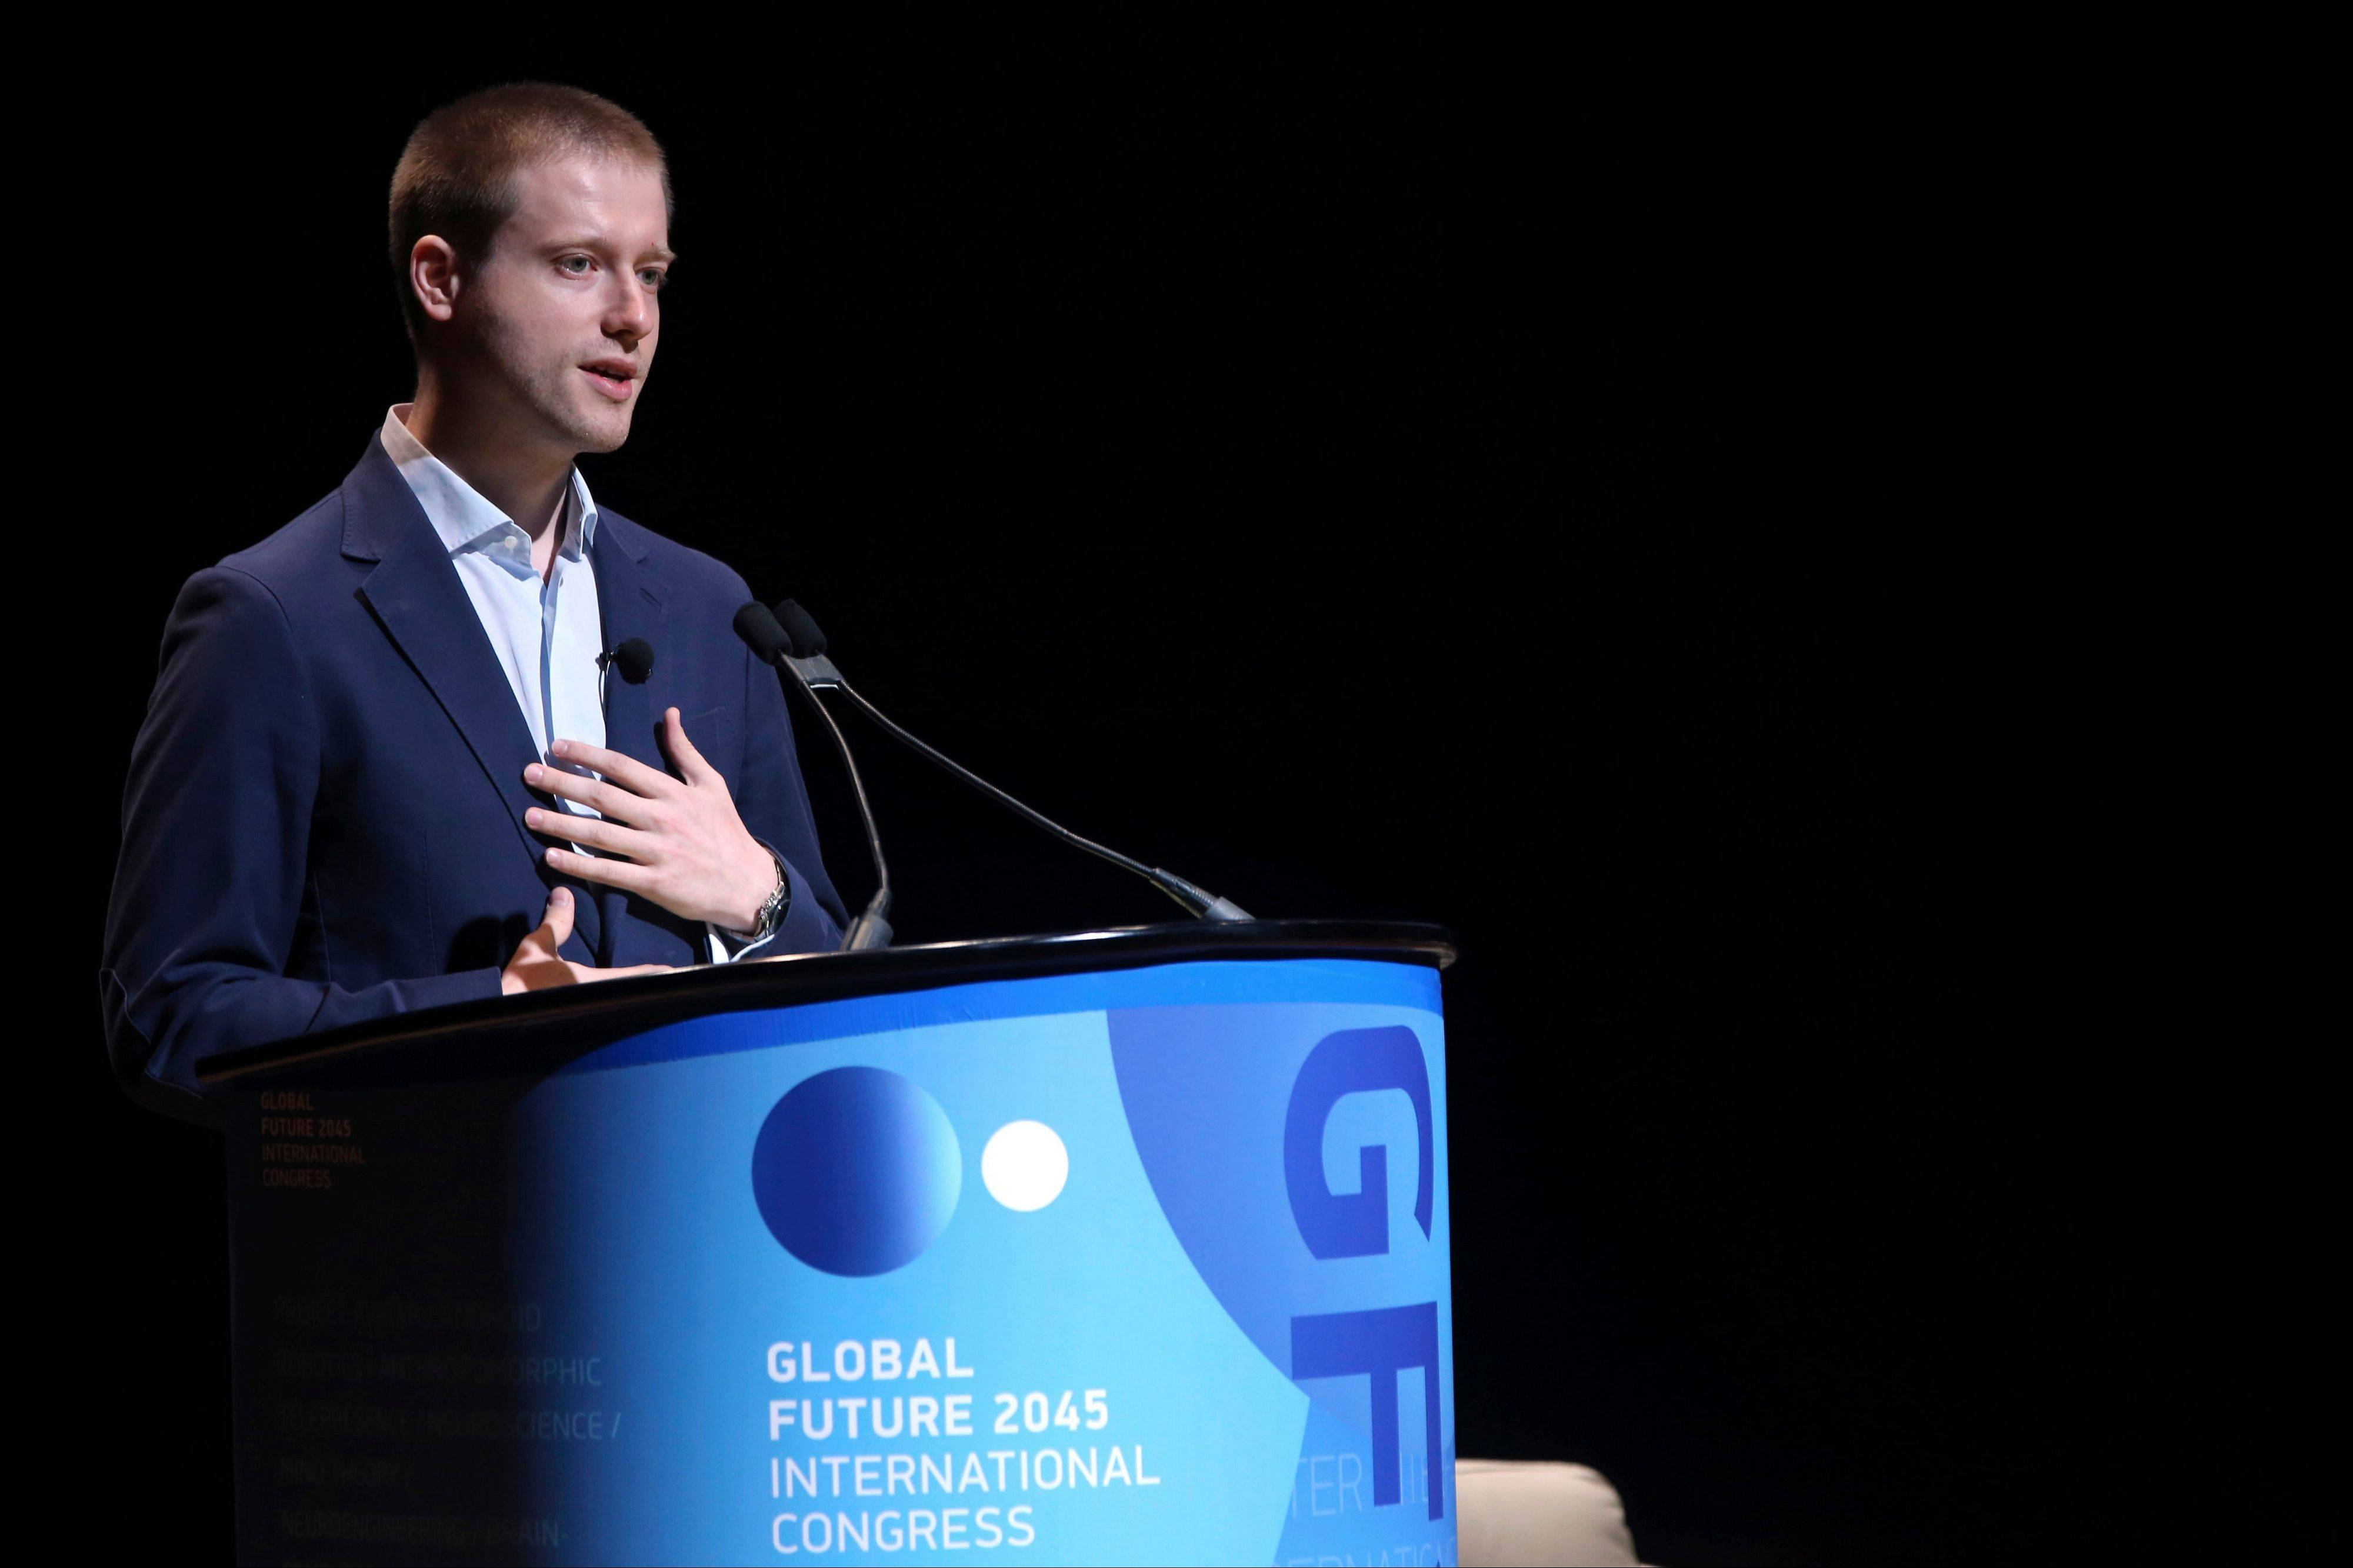 Russian billionaire Dmitry Itskov speaks Saturday to the Global Future 2045 Congress at Lincoln Center in New York.